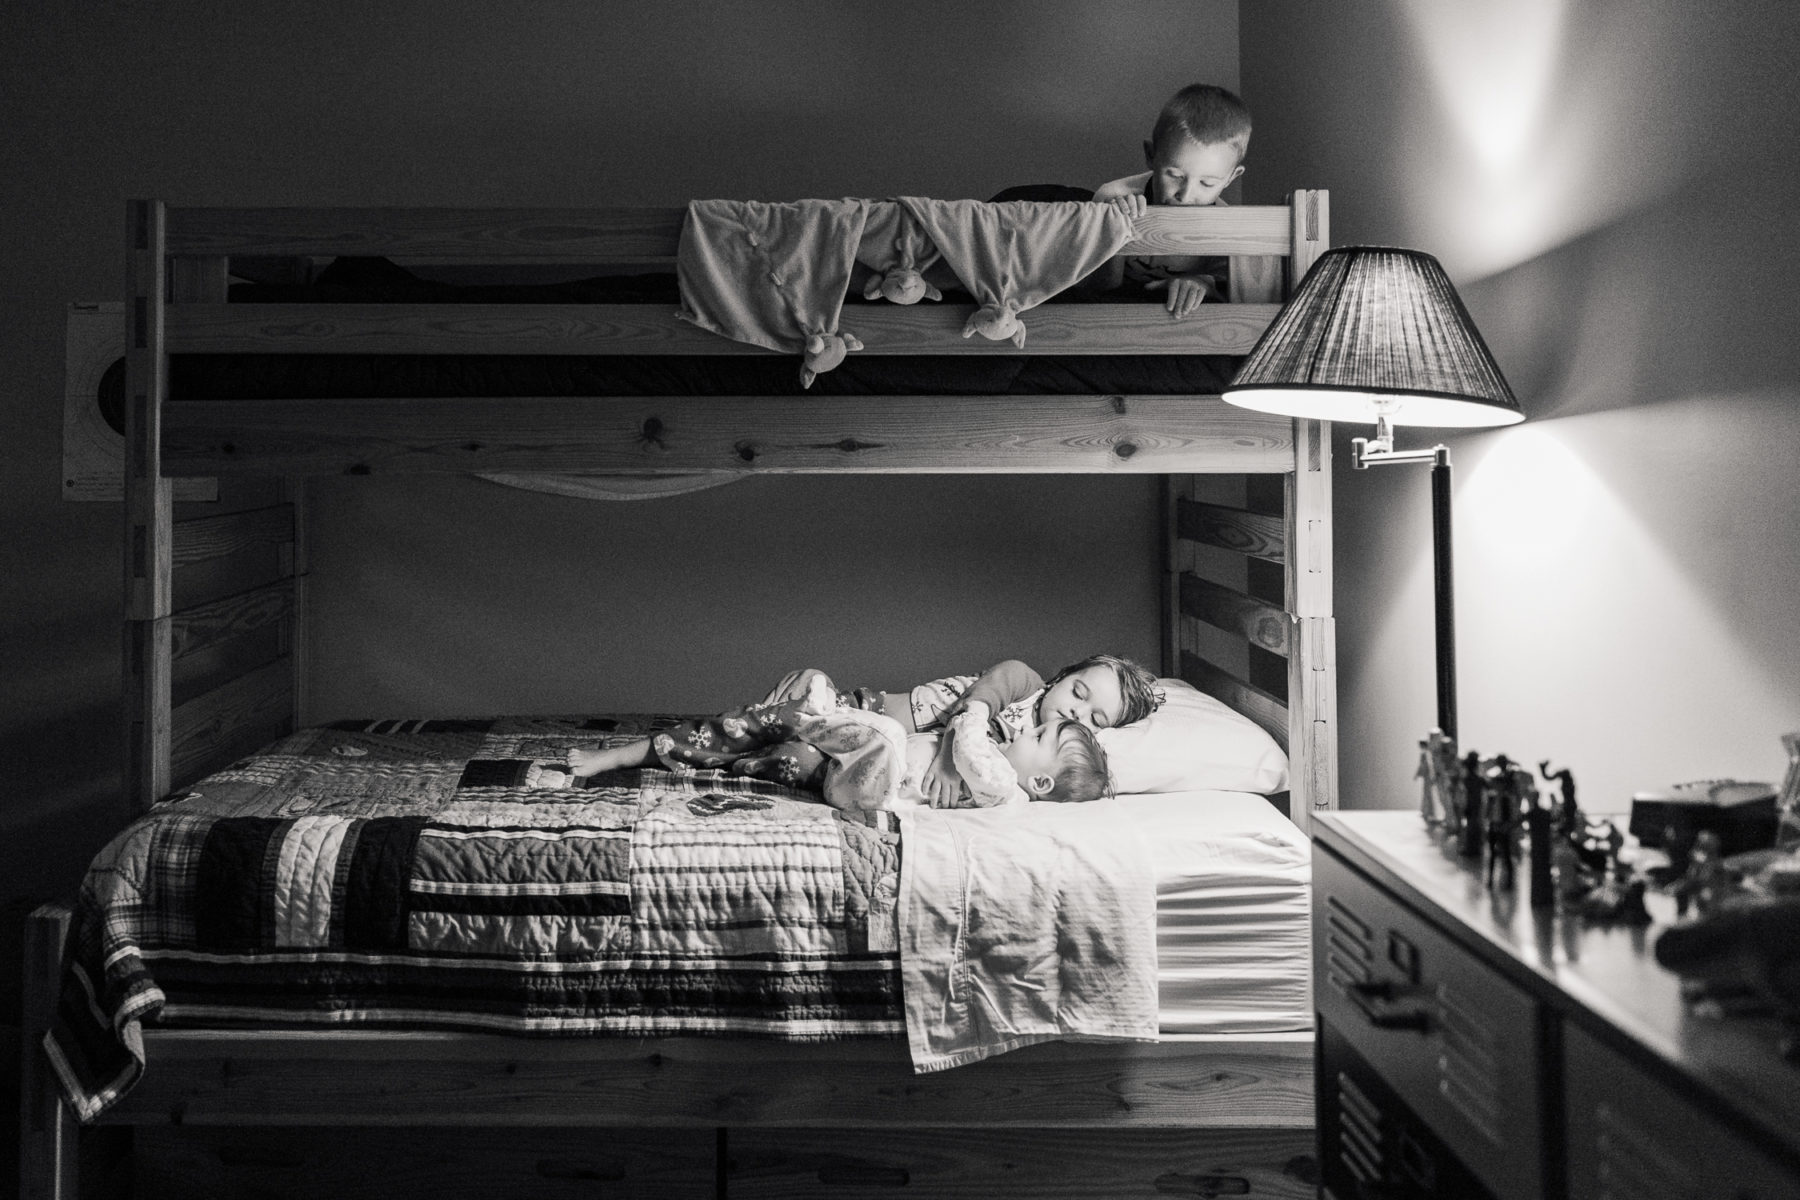 Brother hosts sister and baby in bunk beds for sleepover